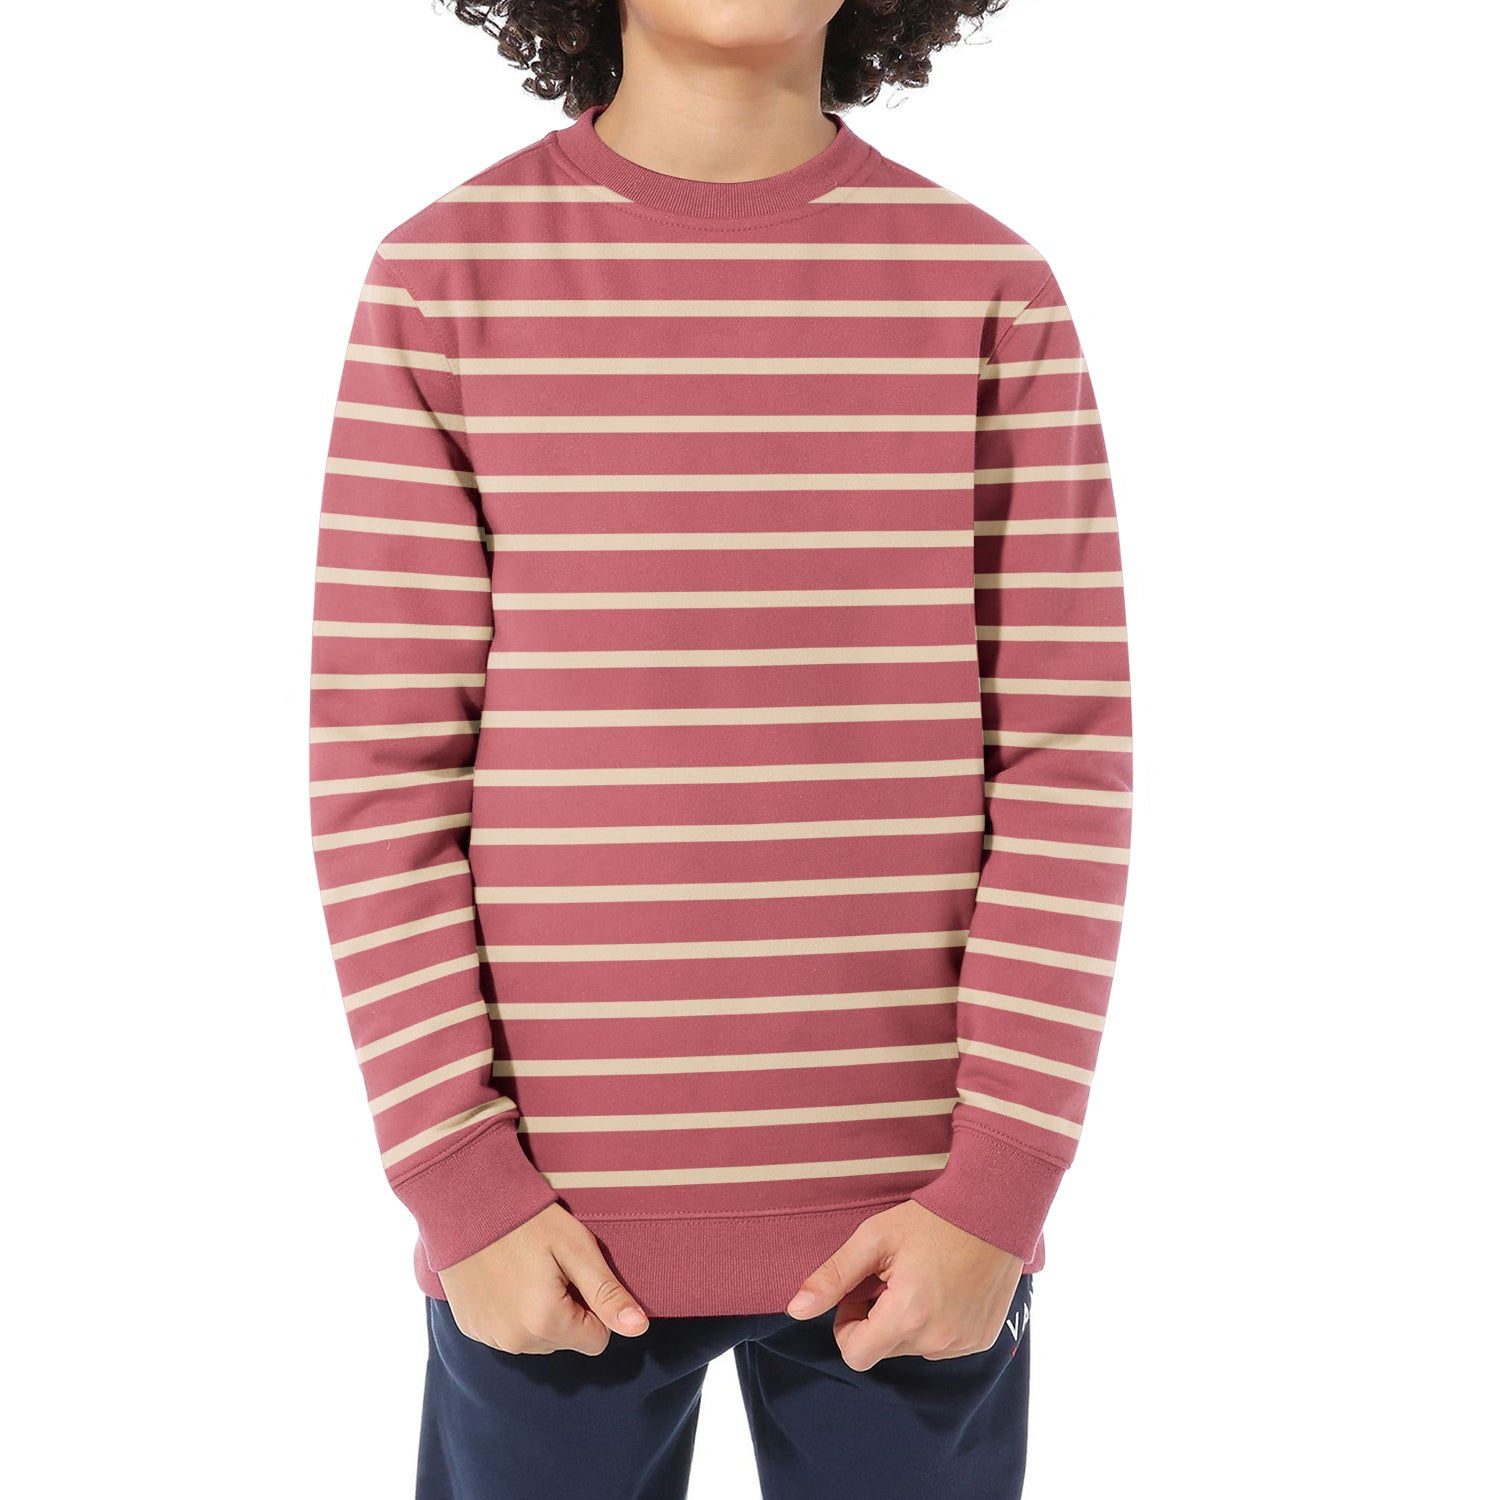 Mango Terry Fleece Sweatshirt For Kids-Dark Pink with Off White Stripe-BE12796